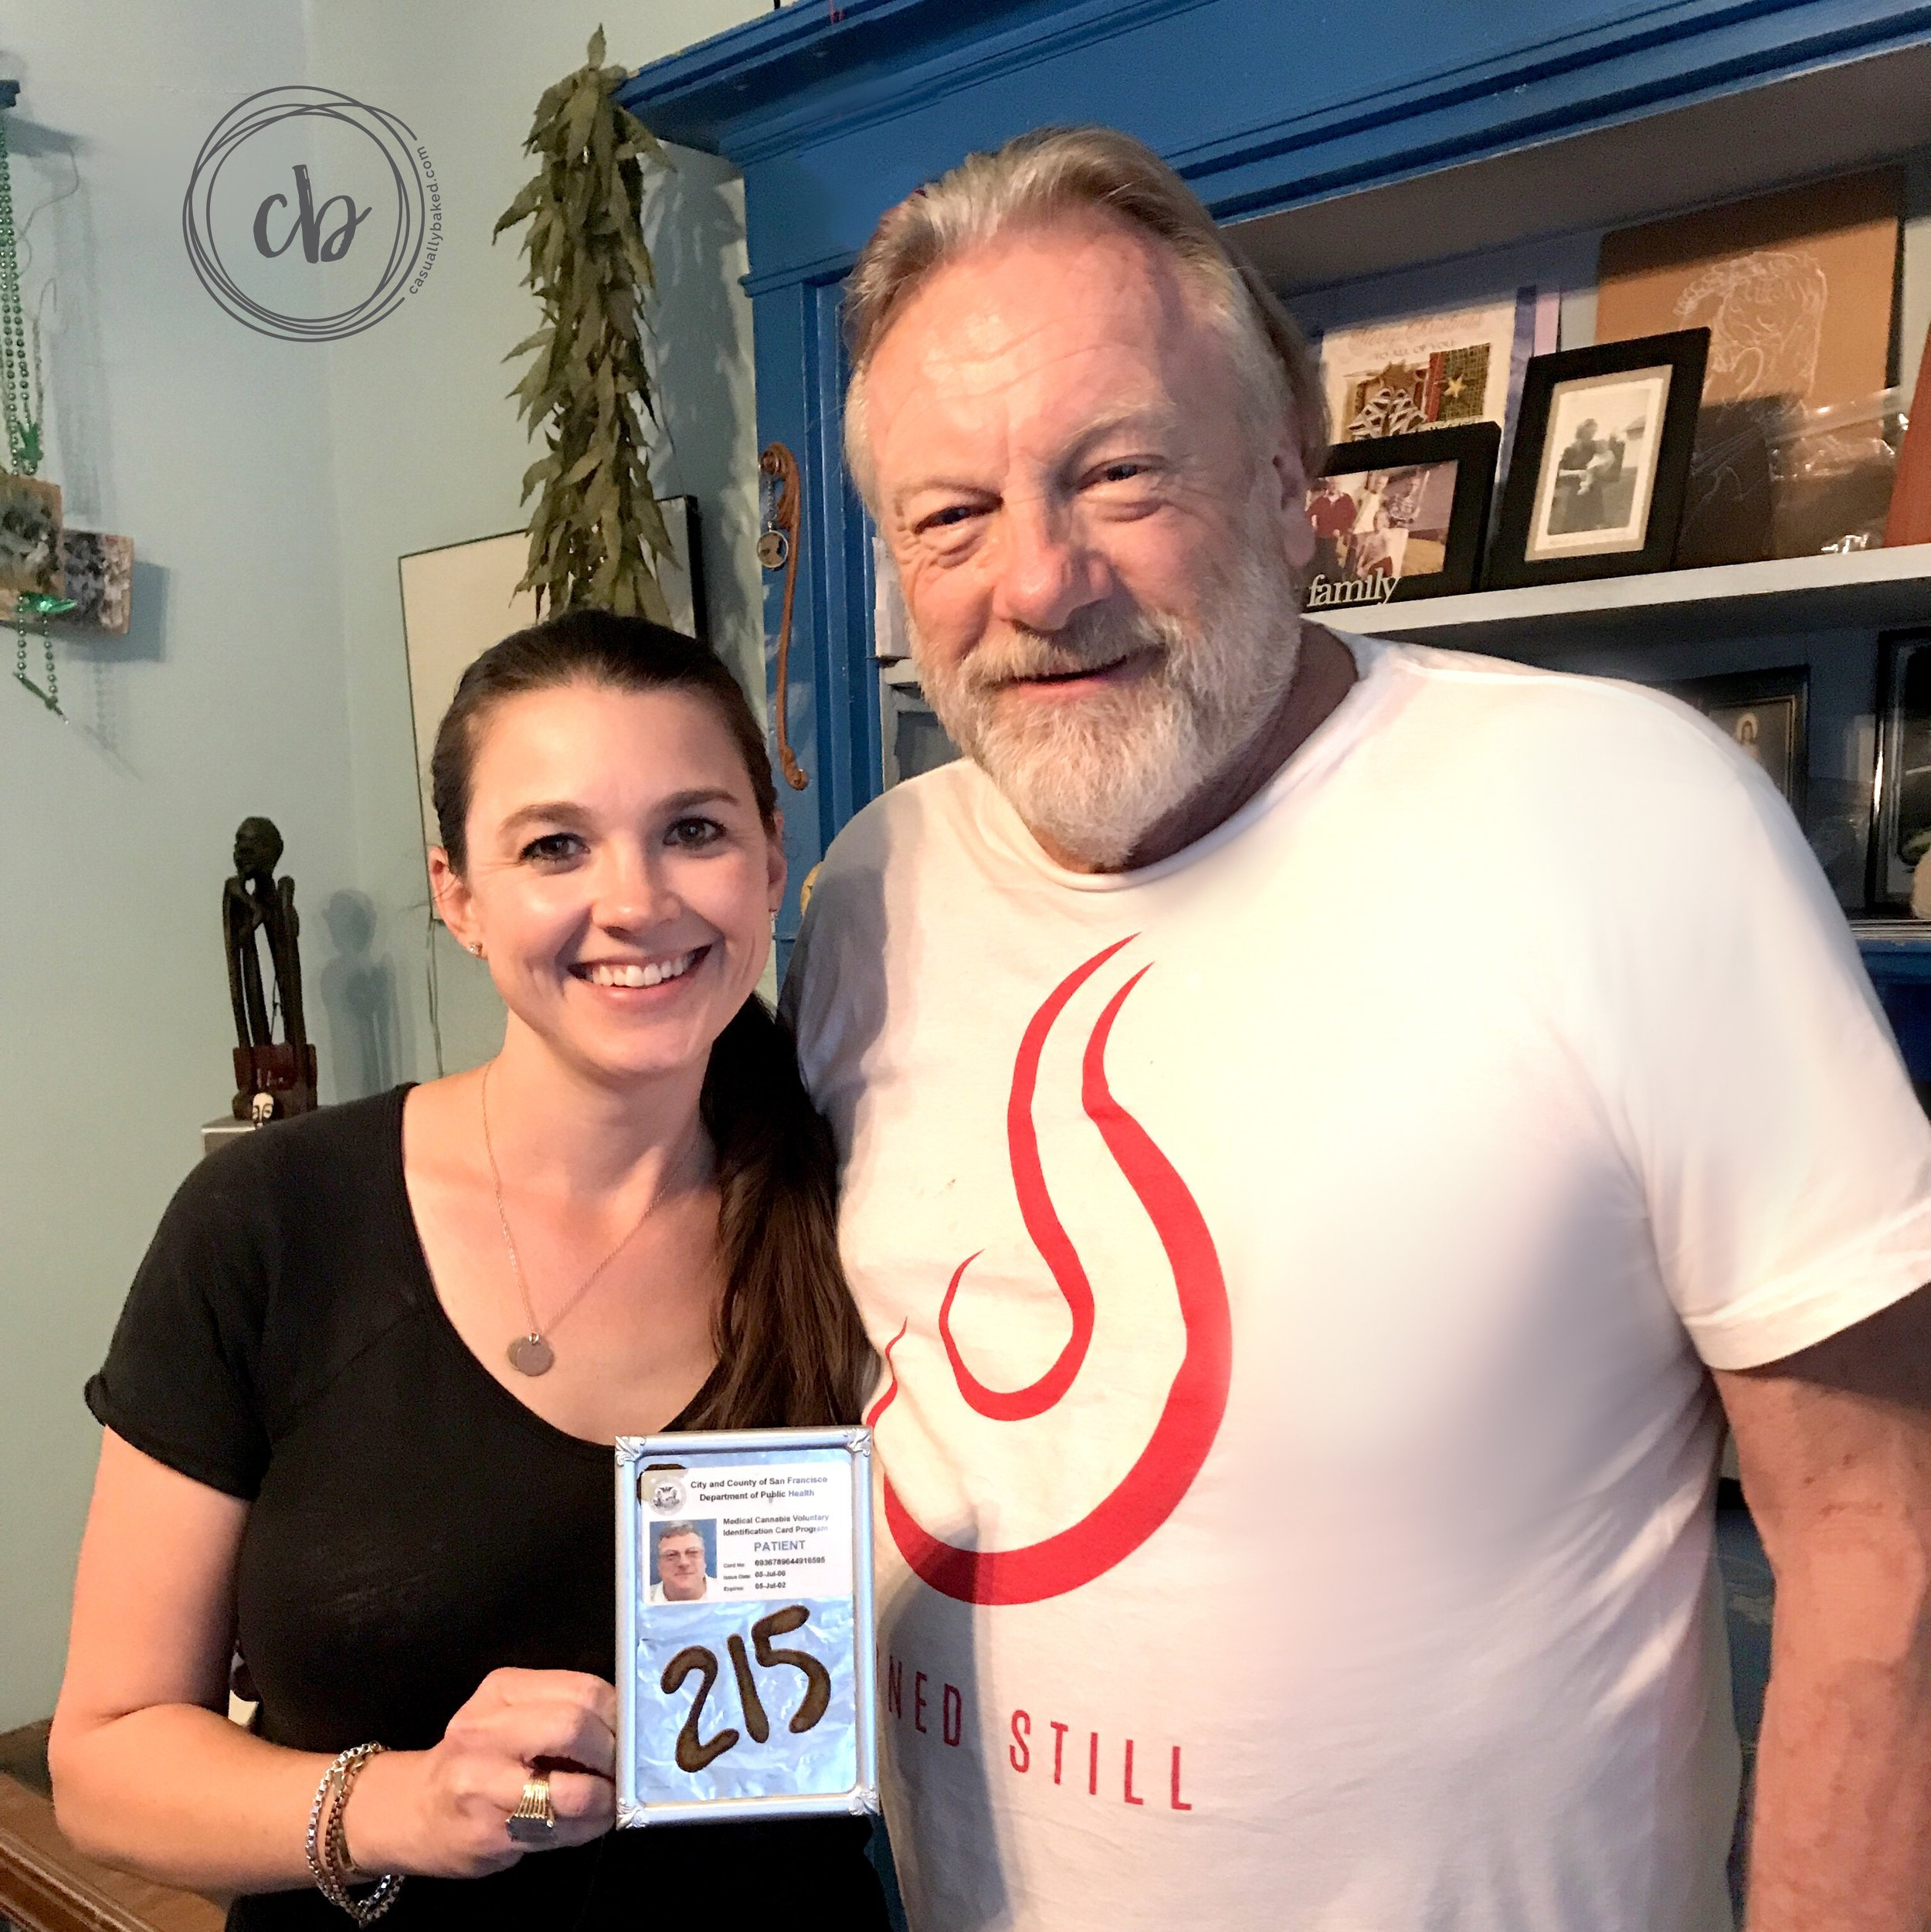 Wayne Justmann is the very first card-carrying medical cannabis patient in the State of California. That 215 is written in hash. :)